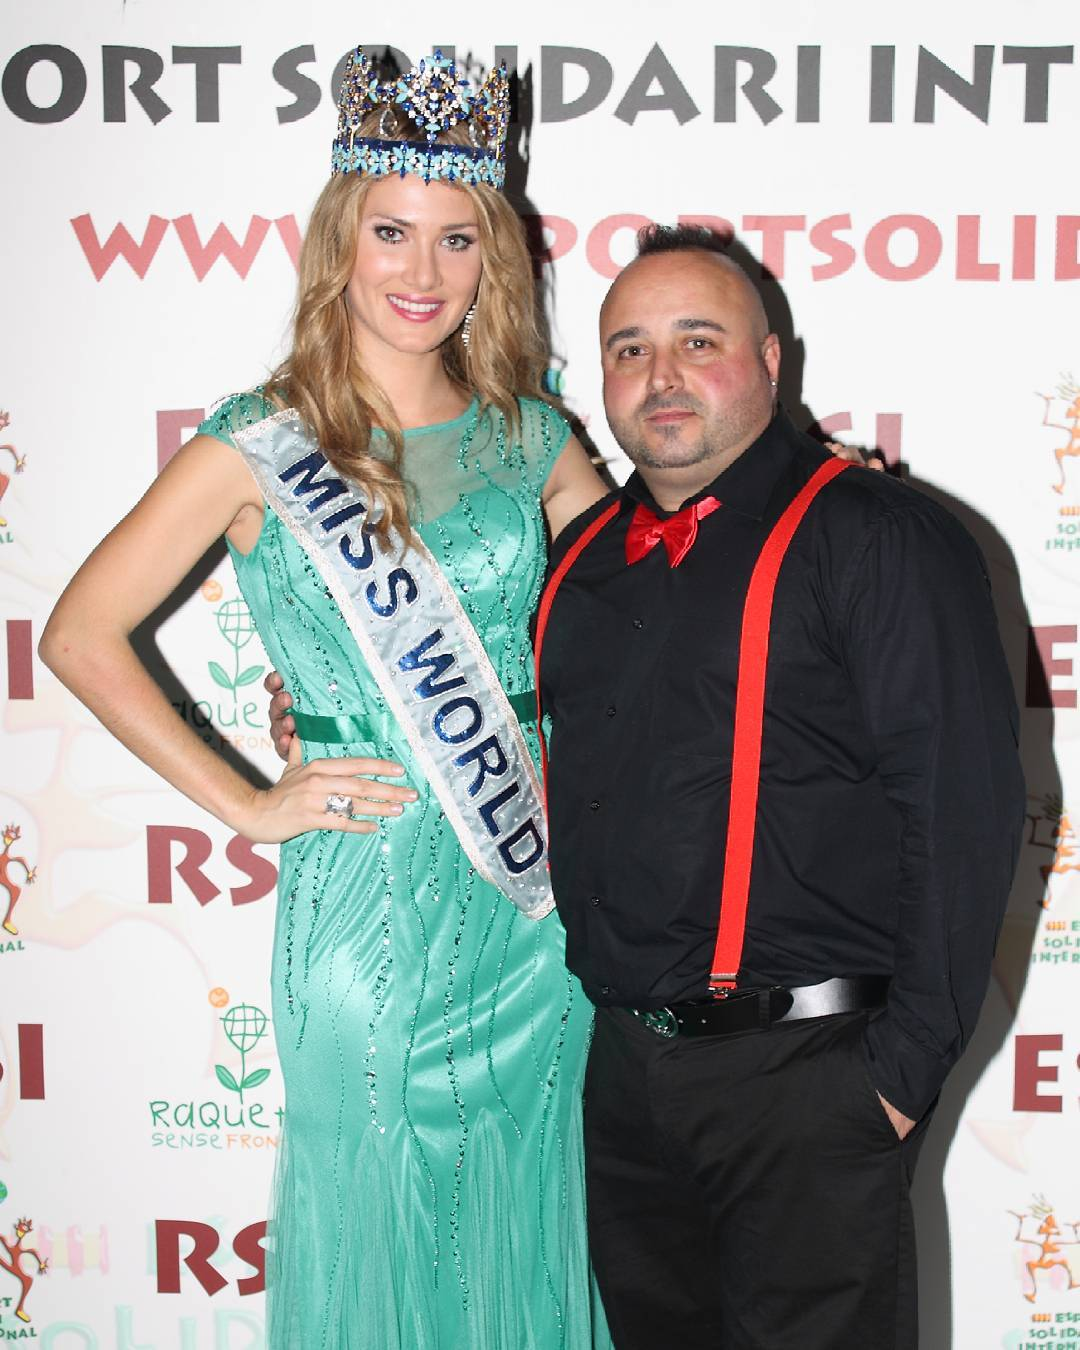 mireia lalaguna, miss world 2015. - Página 13 12568710